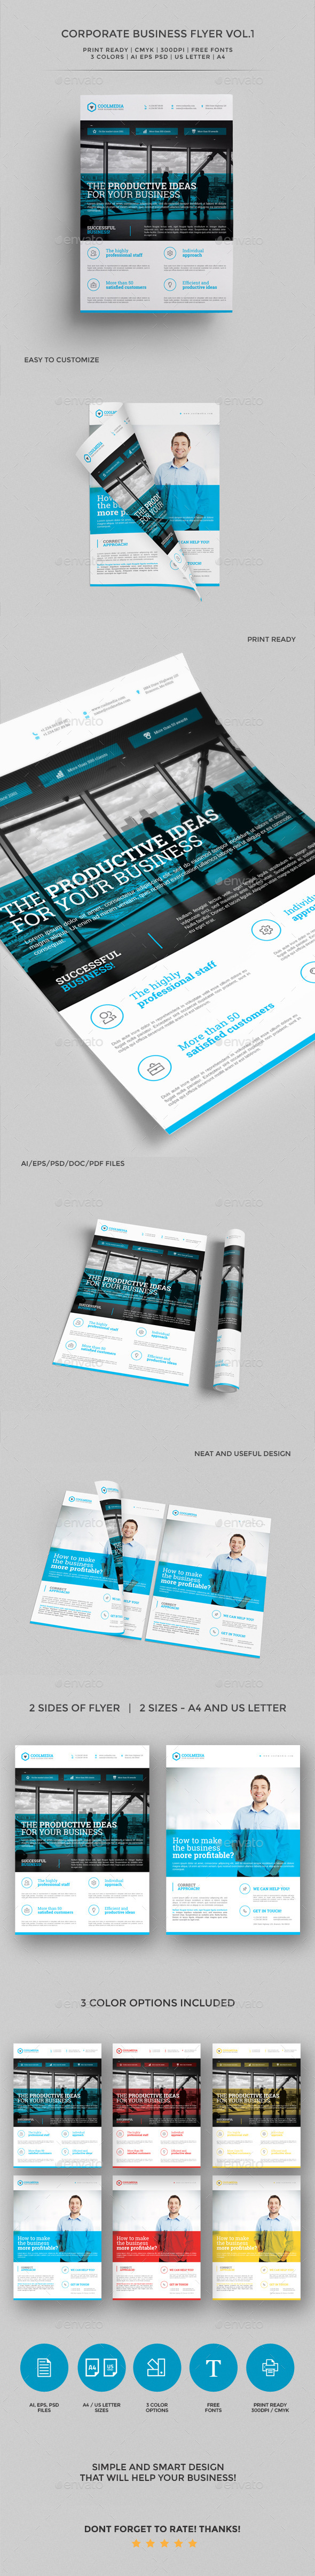 GraphicRiver Corporate Business Flyer vol 1 11312361